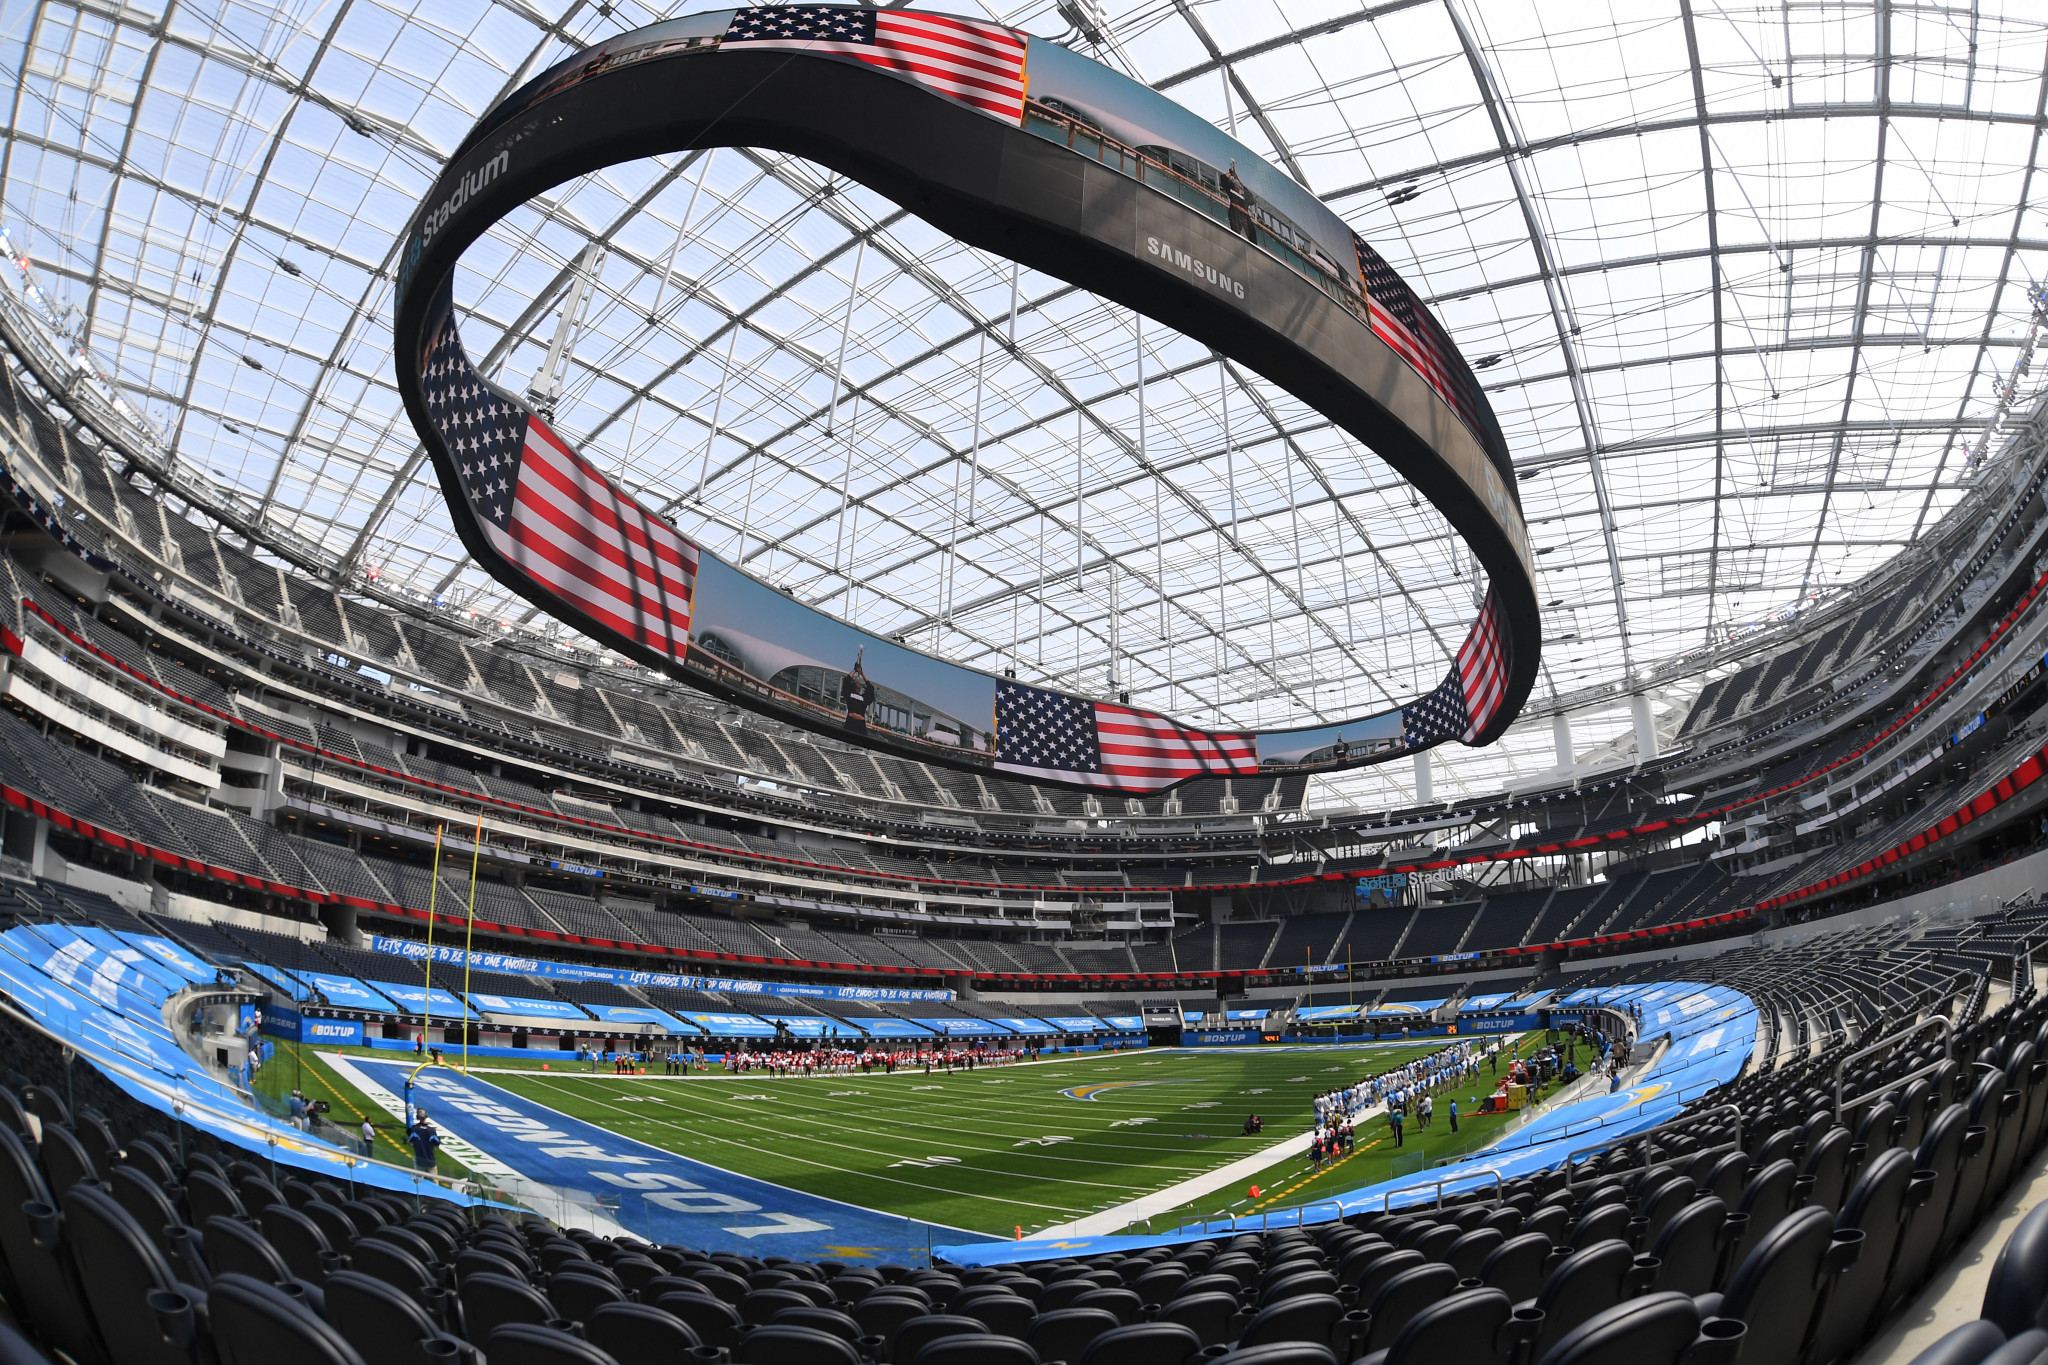 Digital twin of Los Angeles 2028 venue SoFi Stadium to be built to further data analysis